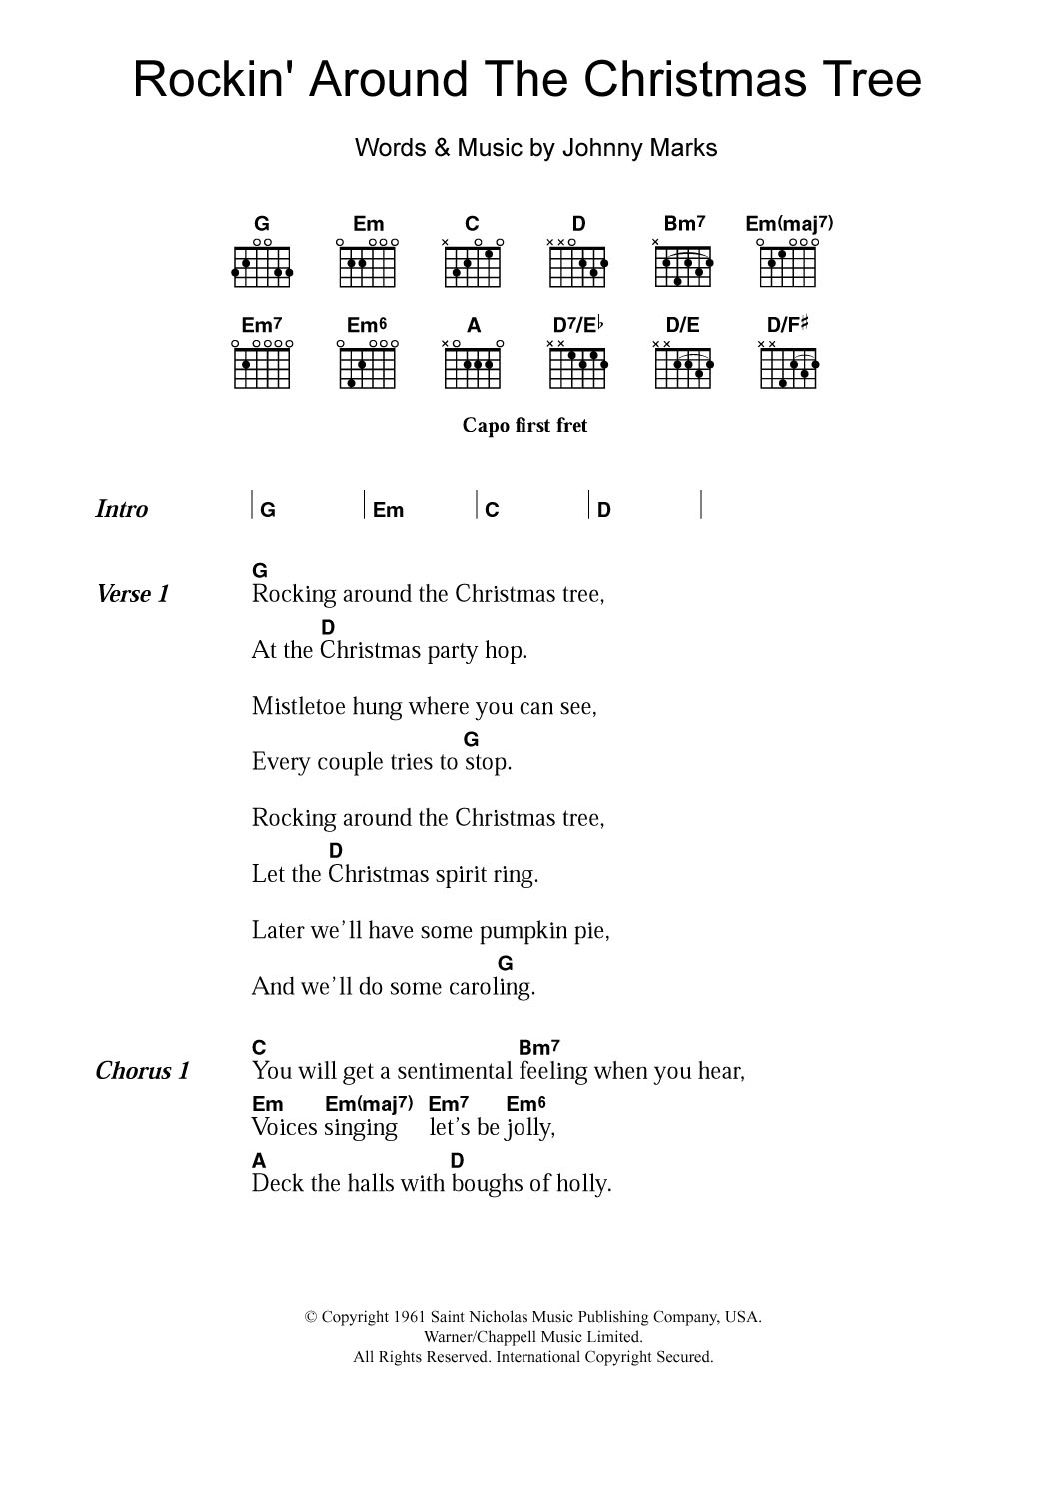 Rockin' Around The Christmas Tree Sheet Music | Brenda Lee | Lyrics ...